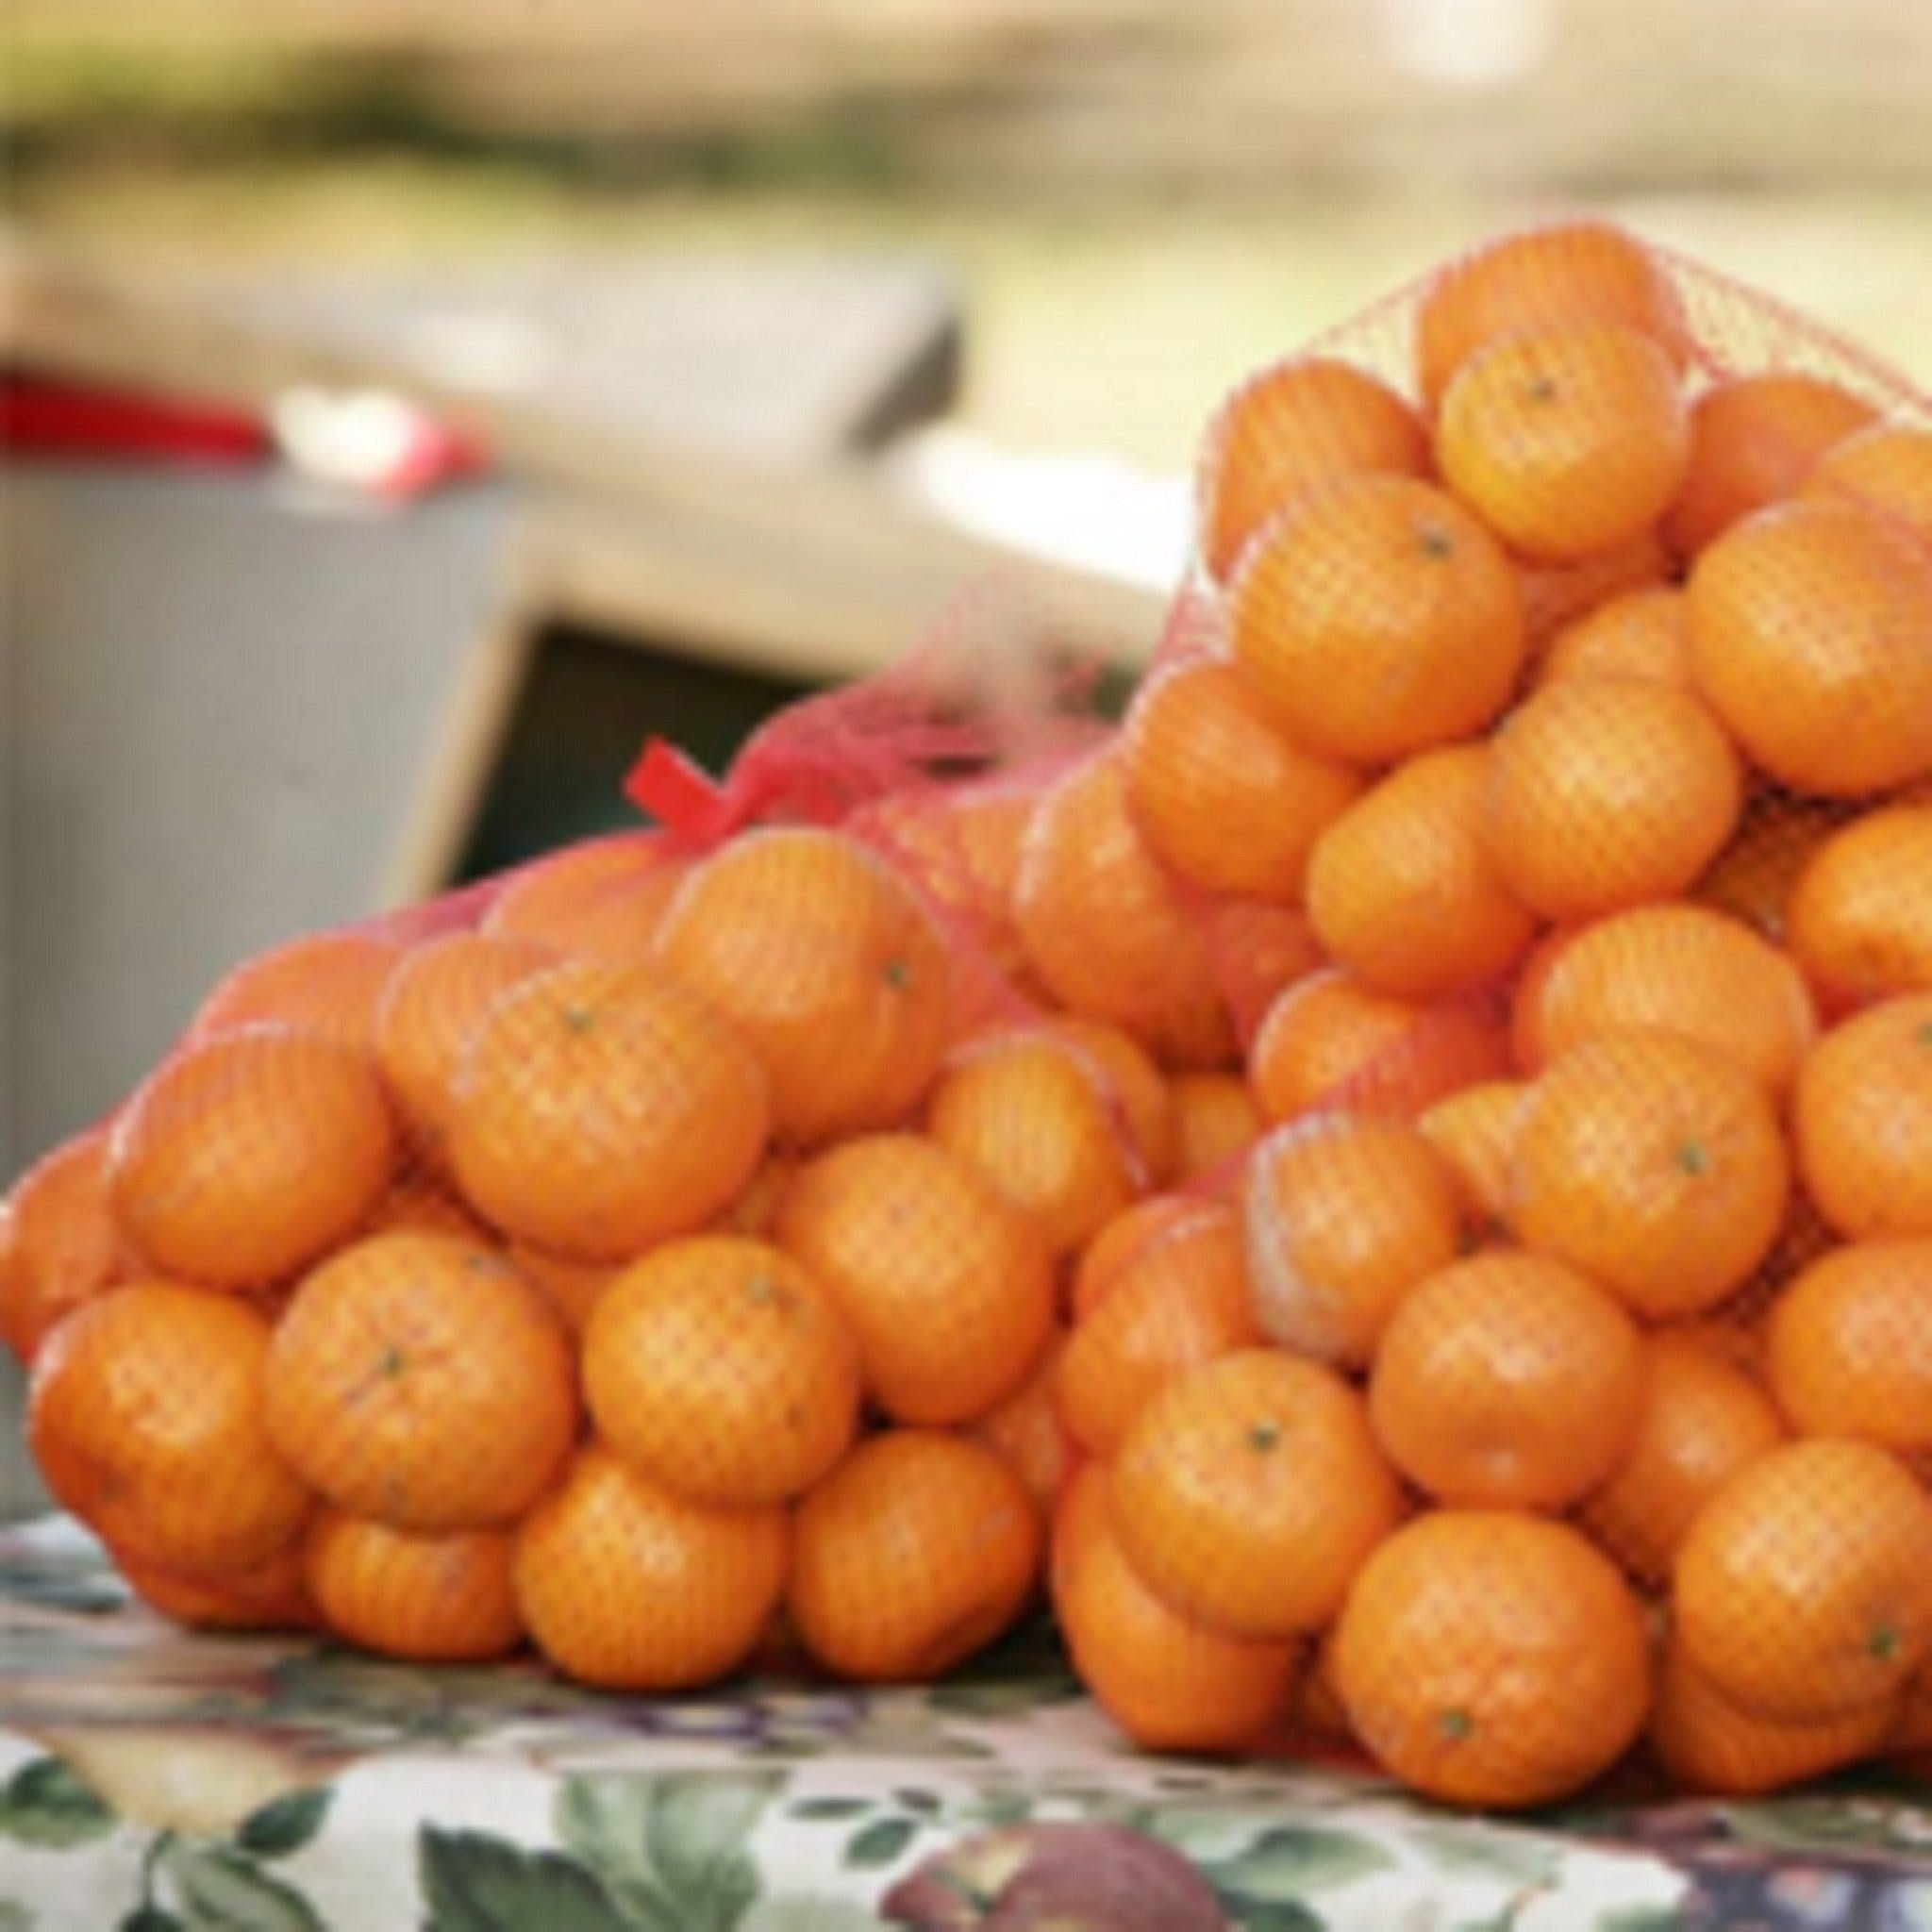 Mathoura Mandarins - Sydney Tourism